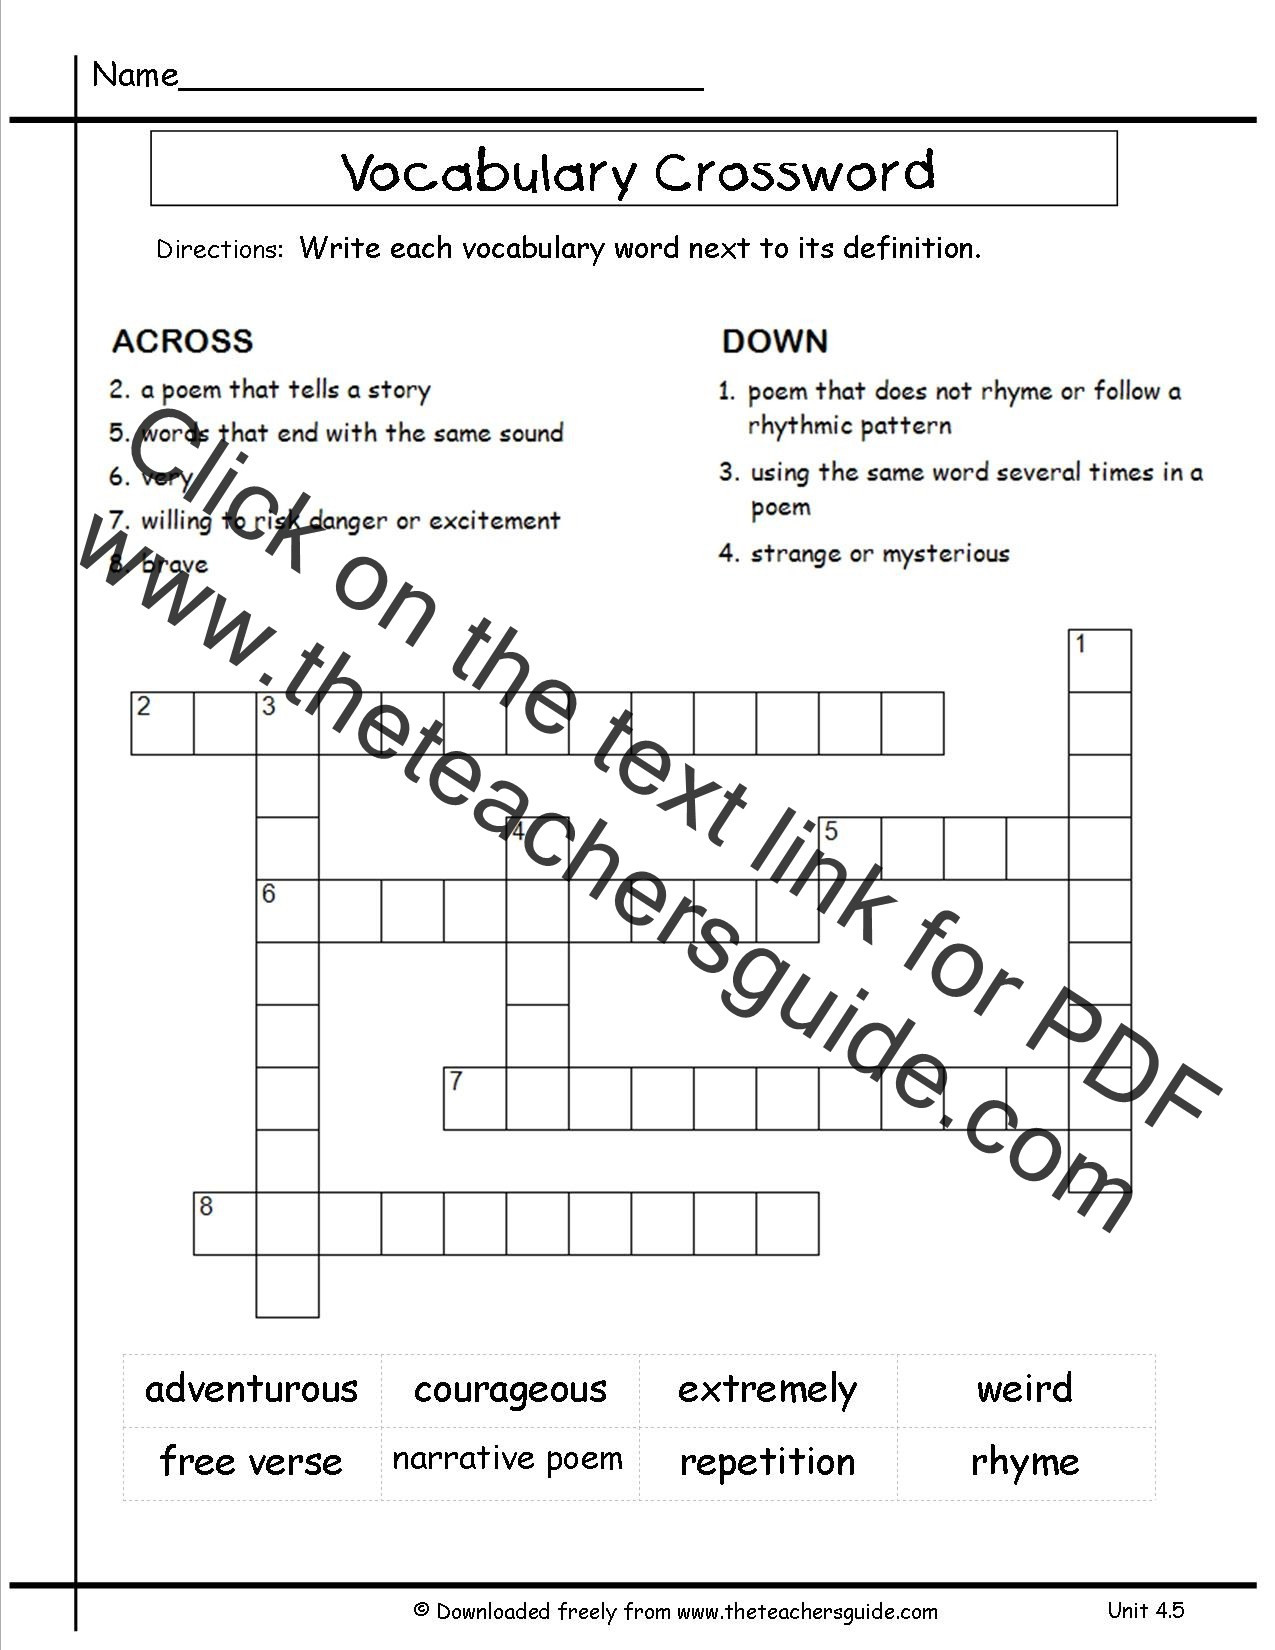 6th Grade Math Crossword Puzzles 6th Grade Math Vocabulary Crossword Puzzles – Jowo